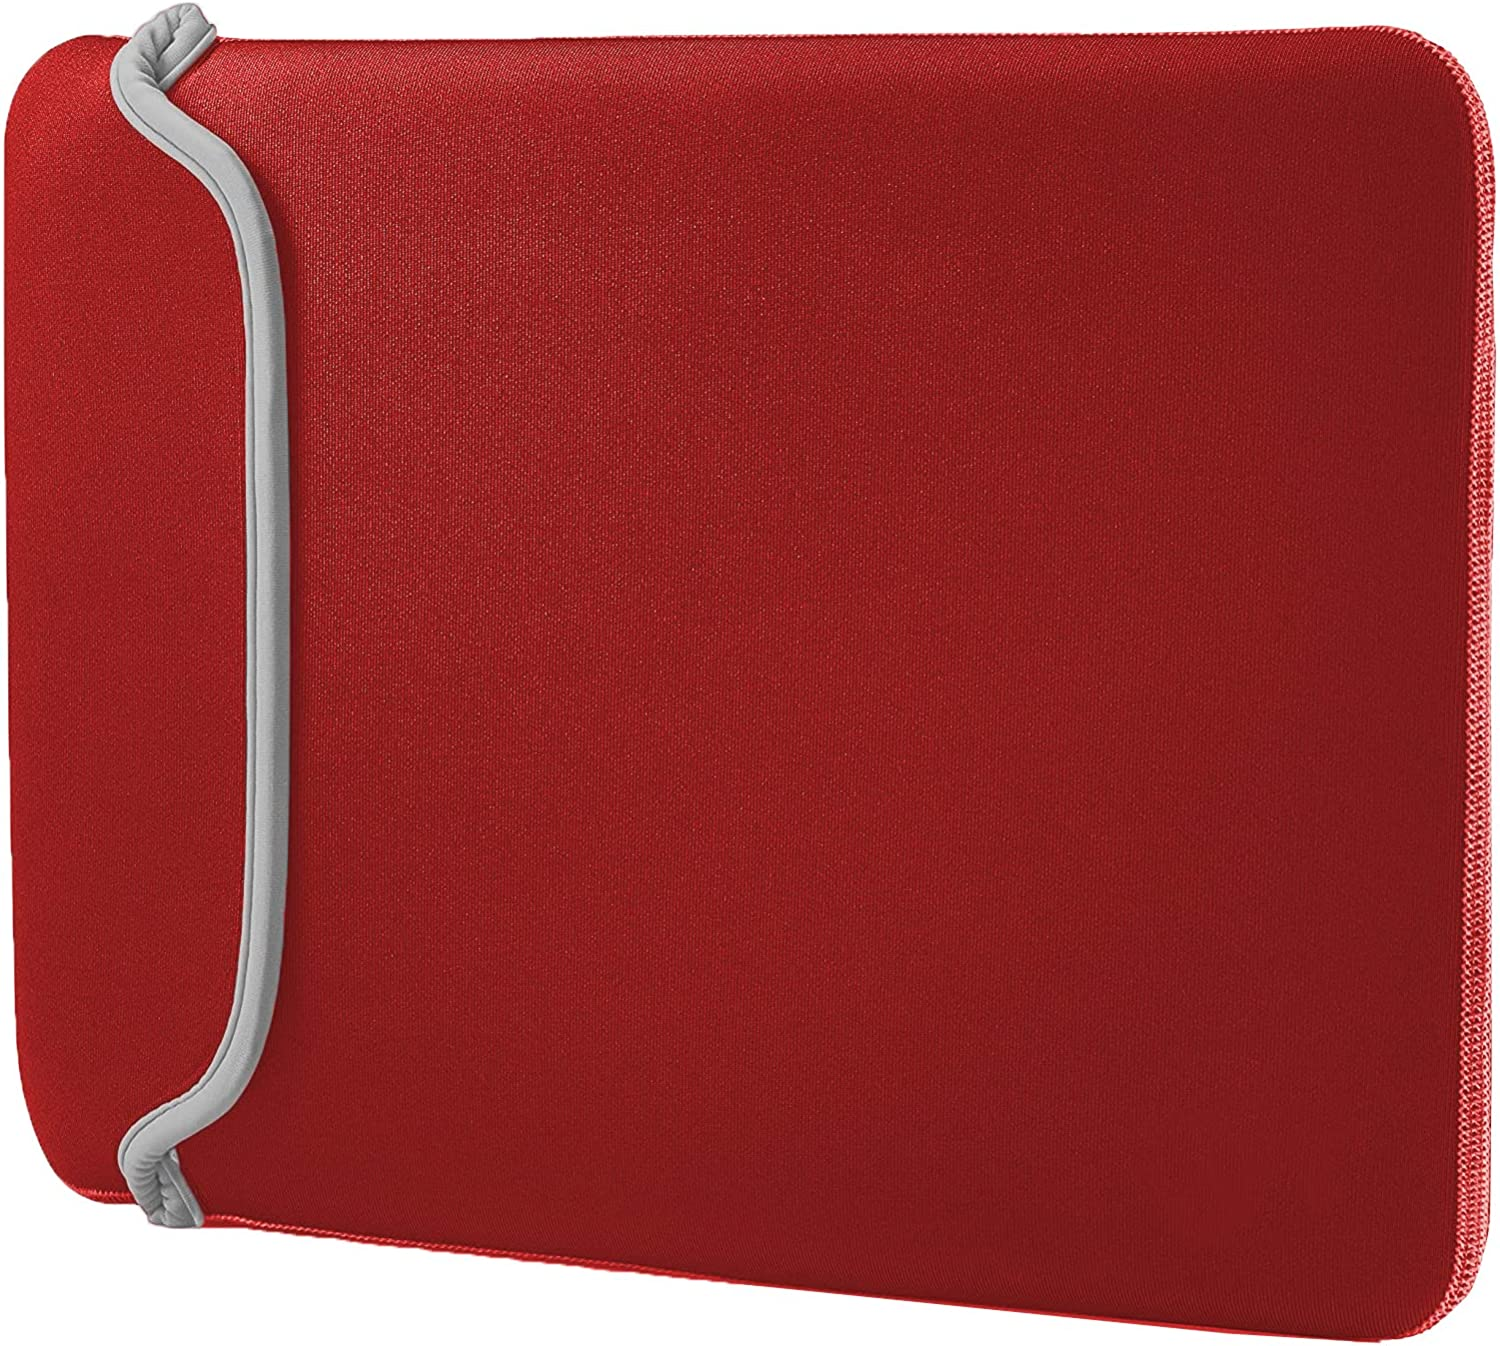 Red Fuschia Protective Neoprene Tablet & Laptop Two Color Sleeve Shockproof Cover for 14